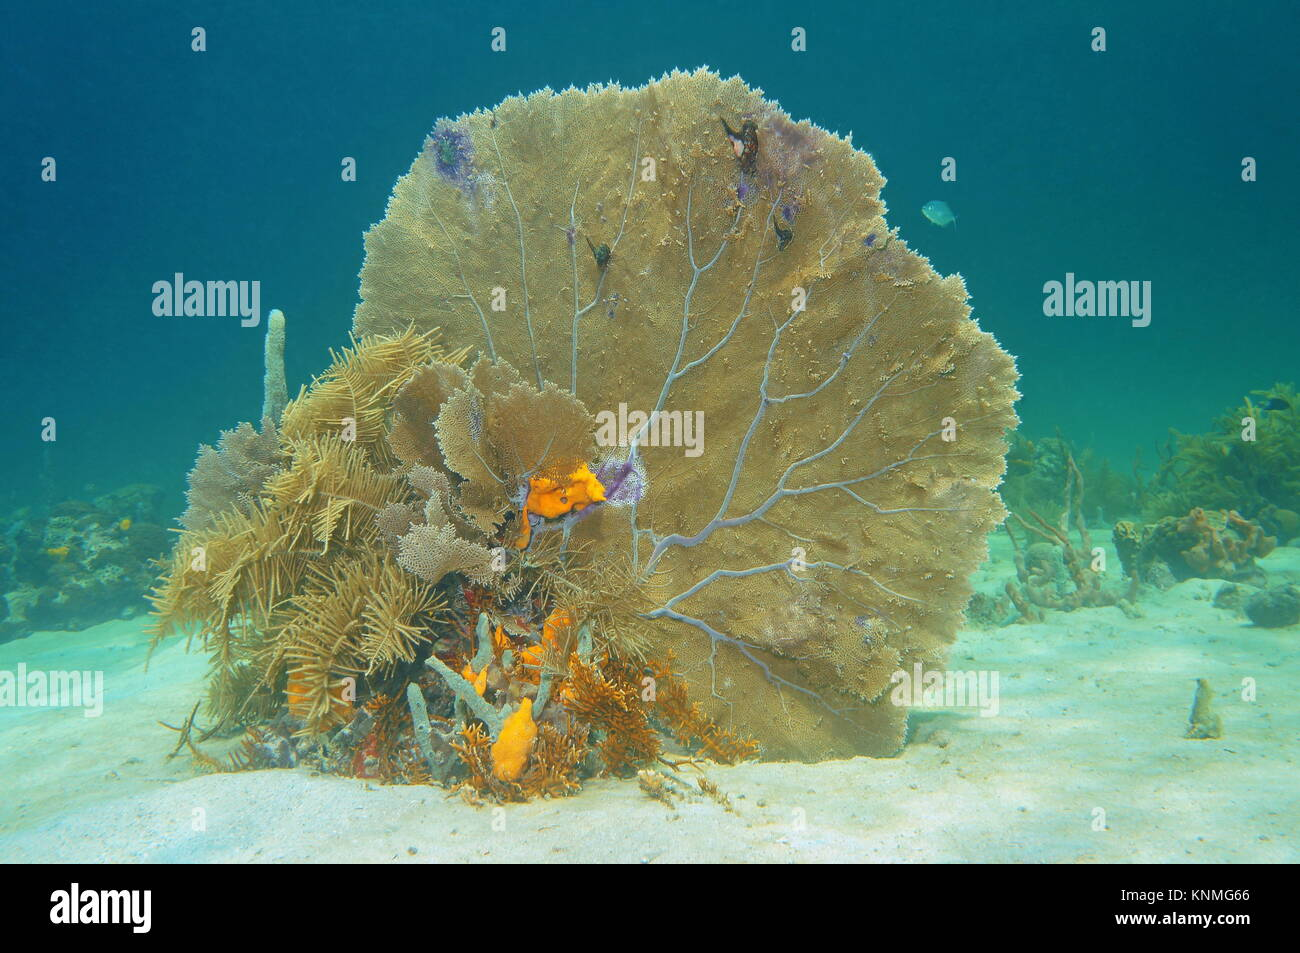 Soft coral venus fan, Gorgonia flabellum, underwater on a sandy seabed in the Caribbean sea, Cuba Stock Photo